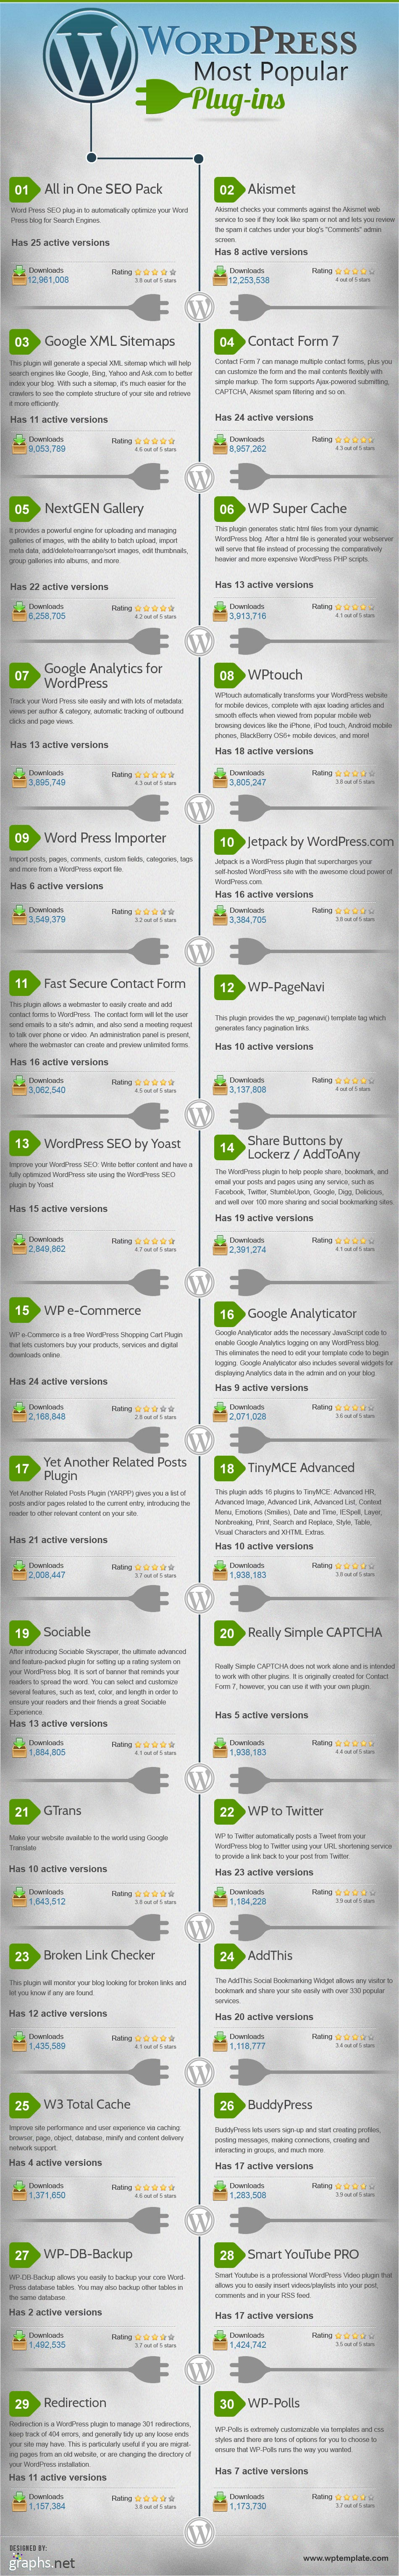 Wordpress Must Have Plugins-Infographic